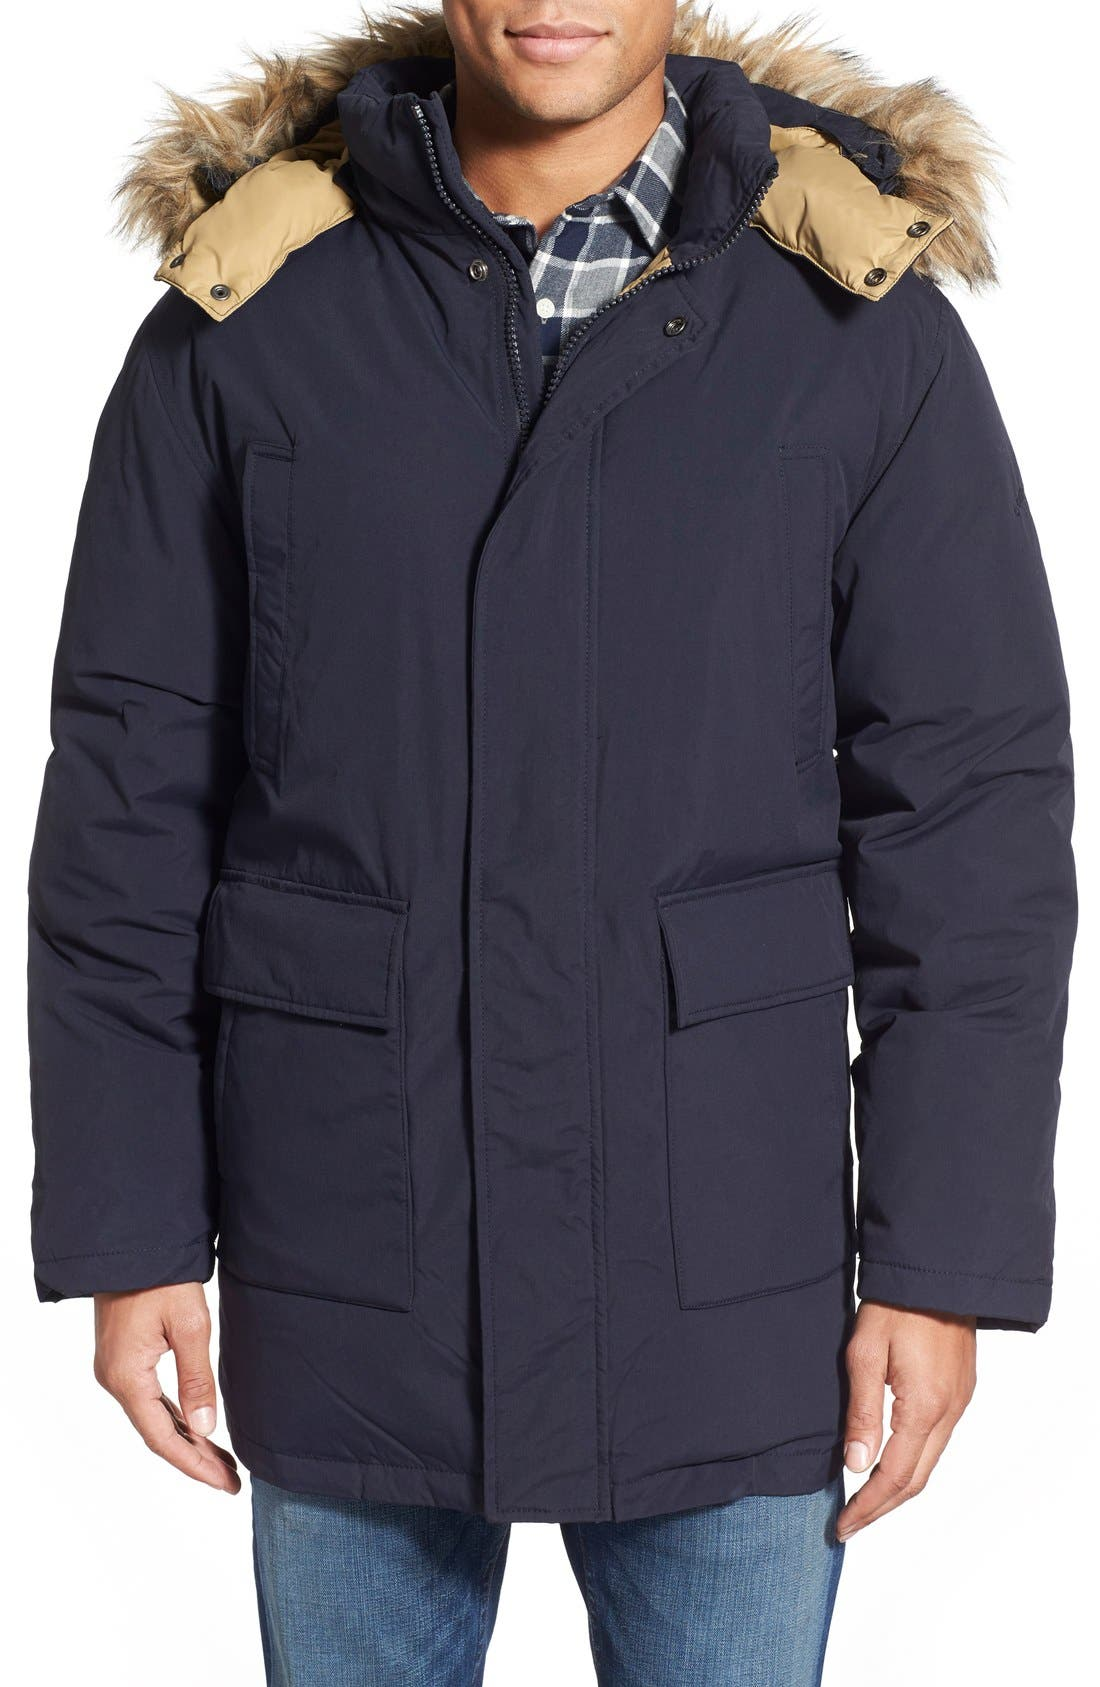 'Iceberg' Water Resistant Down Parka with Faux Fur Trim,                             Main thumbnail 1, color,                             Navy